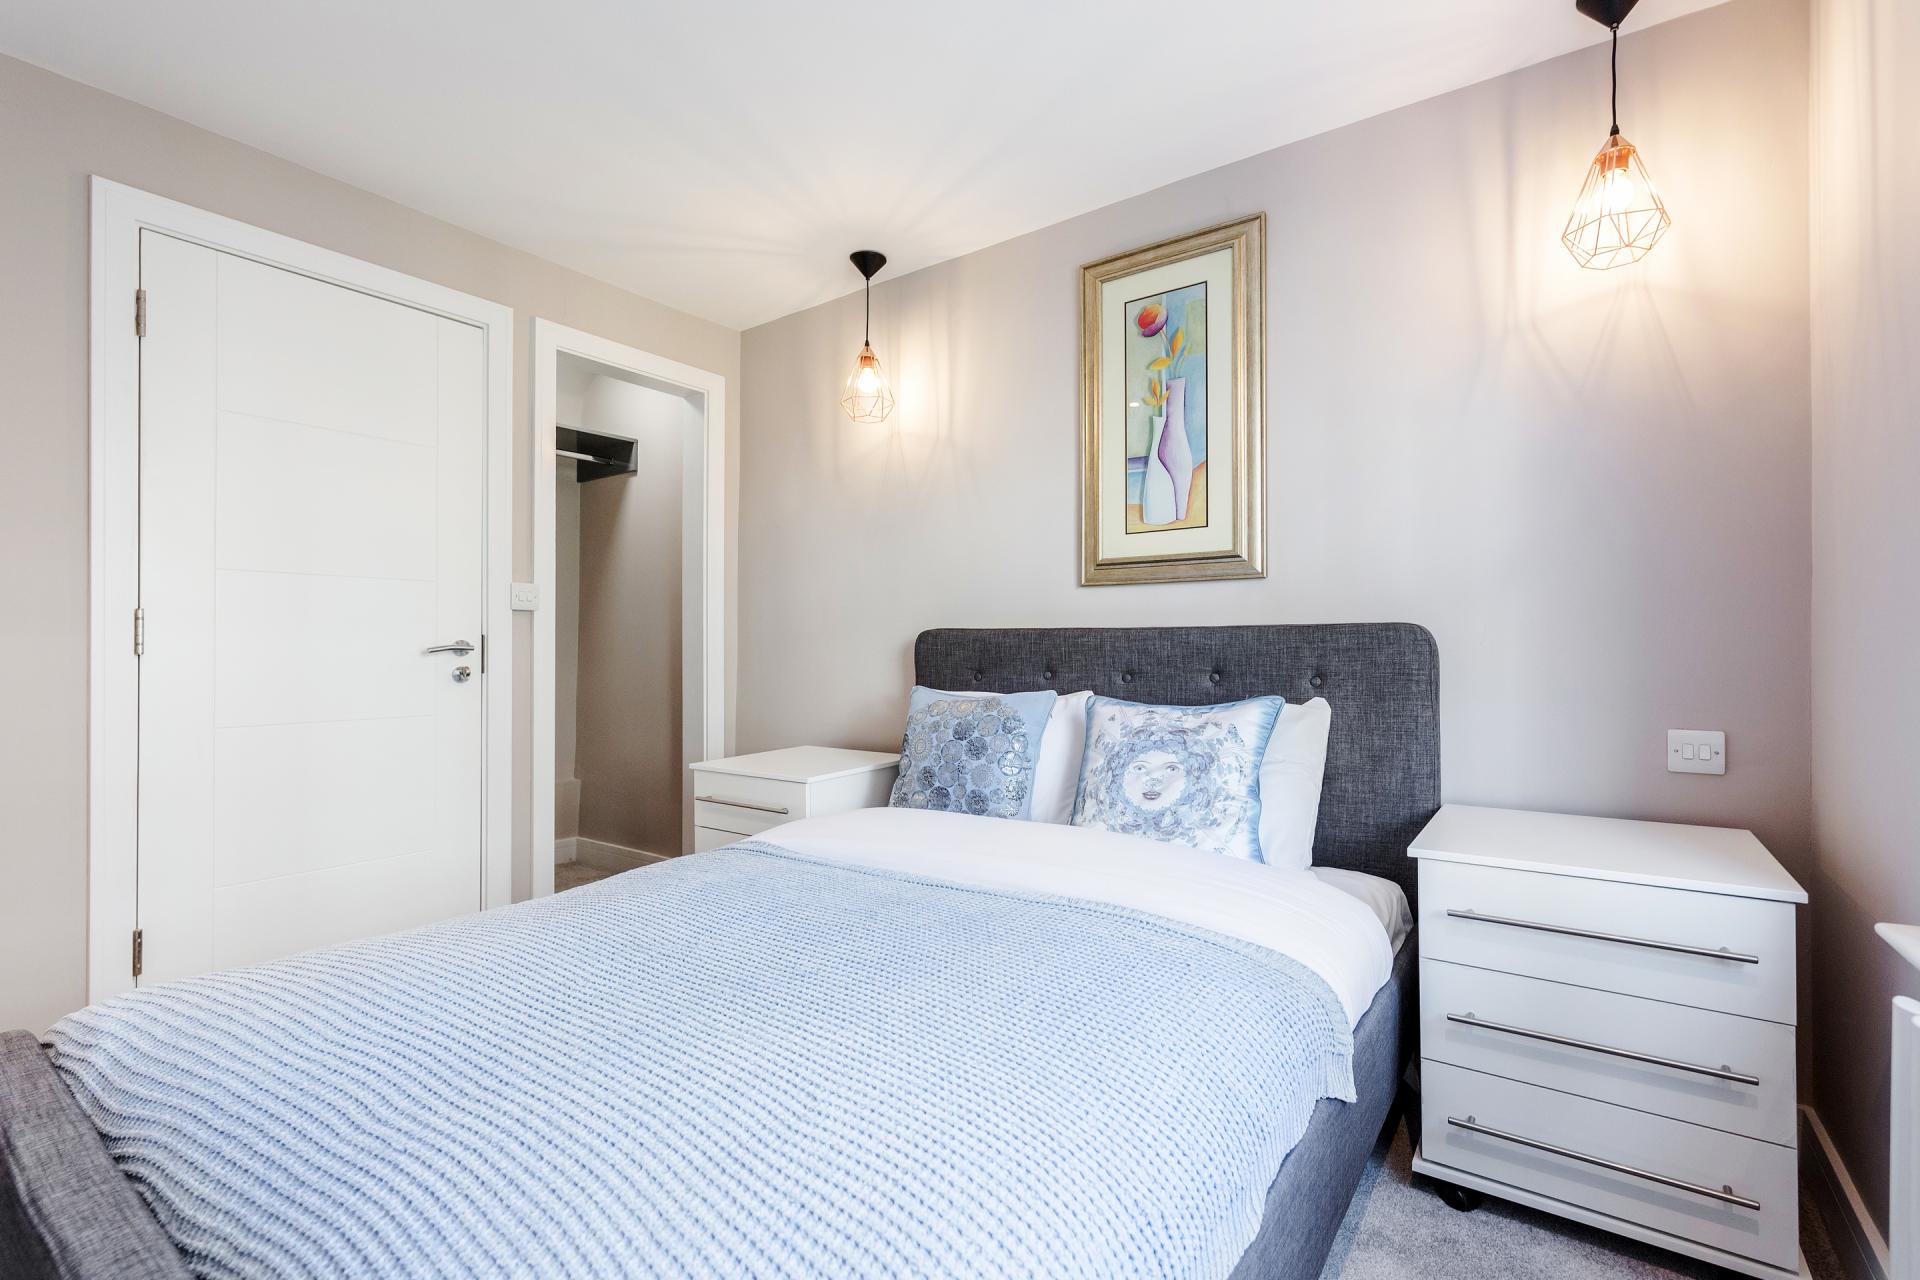 Bedroom at Notting Hill Style, Ladbroke Grove, London - Citybase Apartments